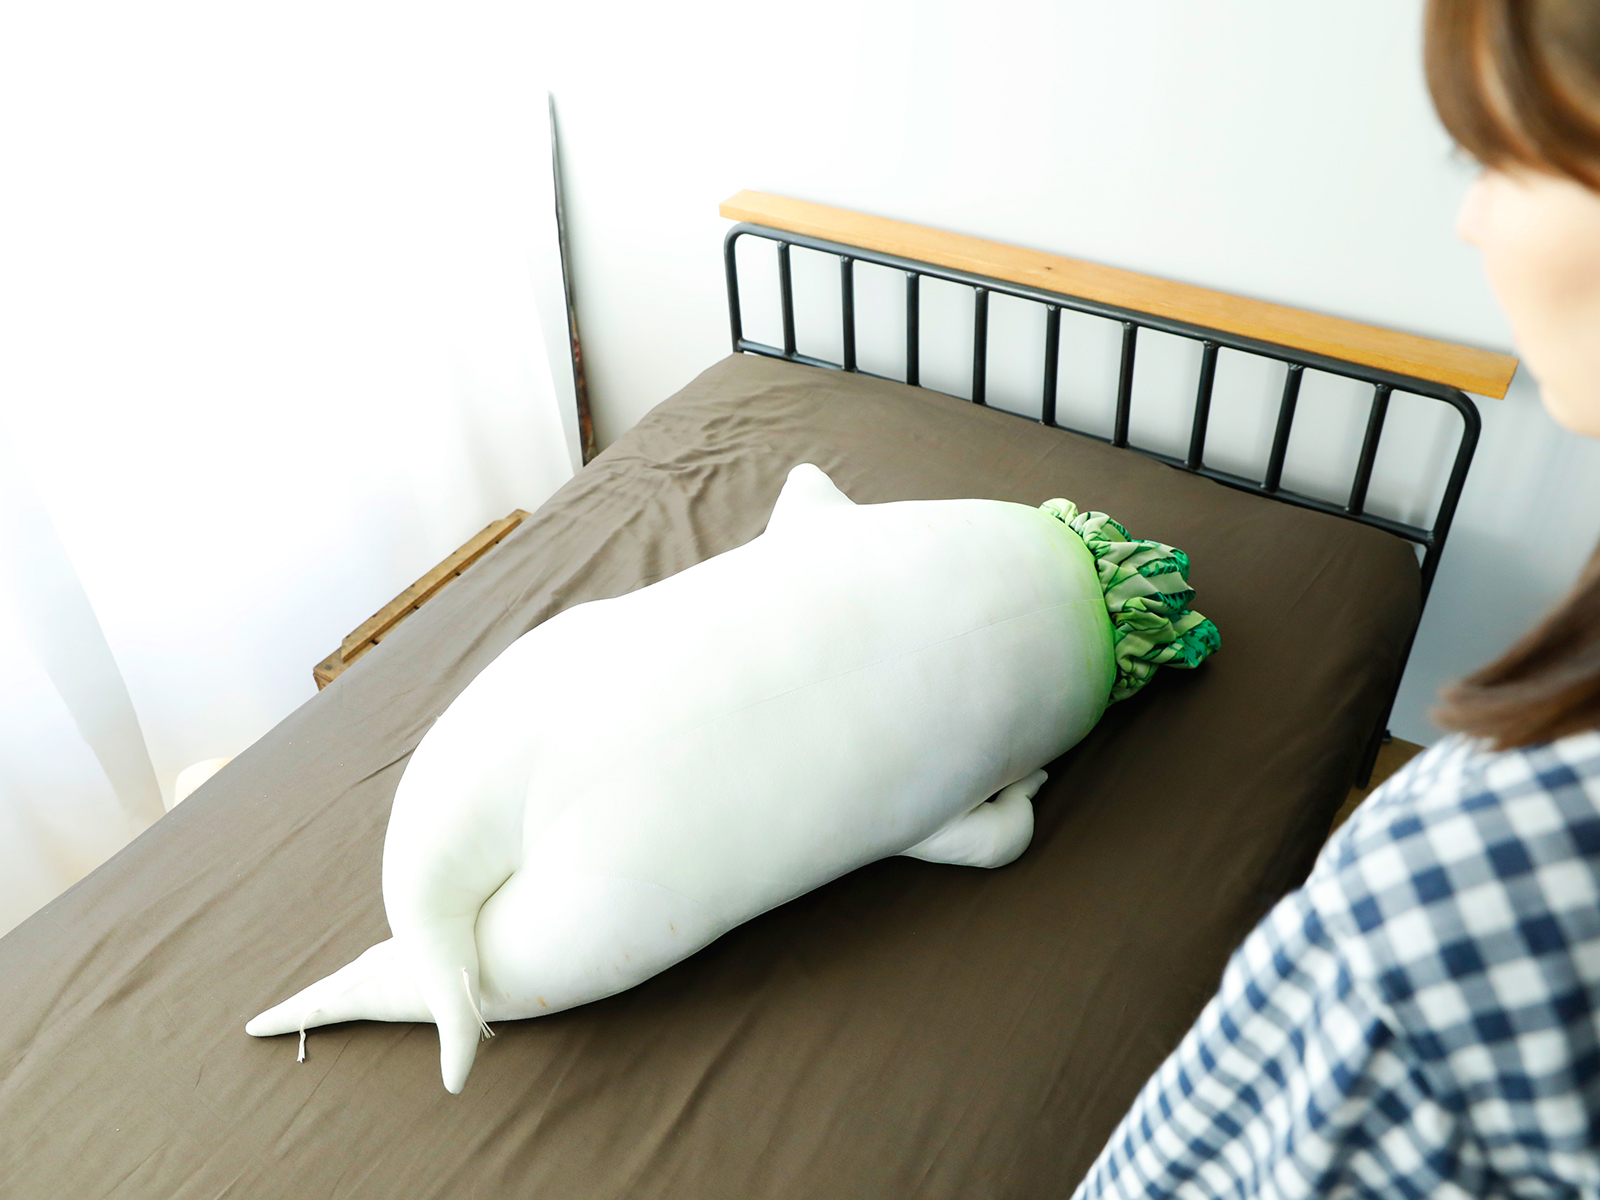 daiko radish body pillow